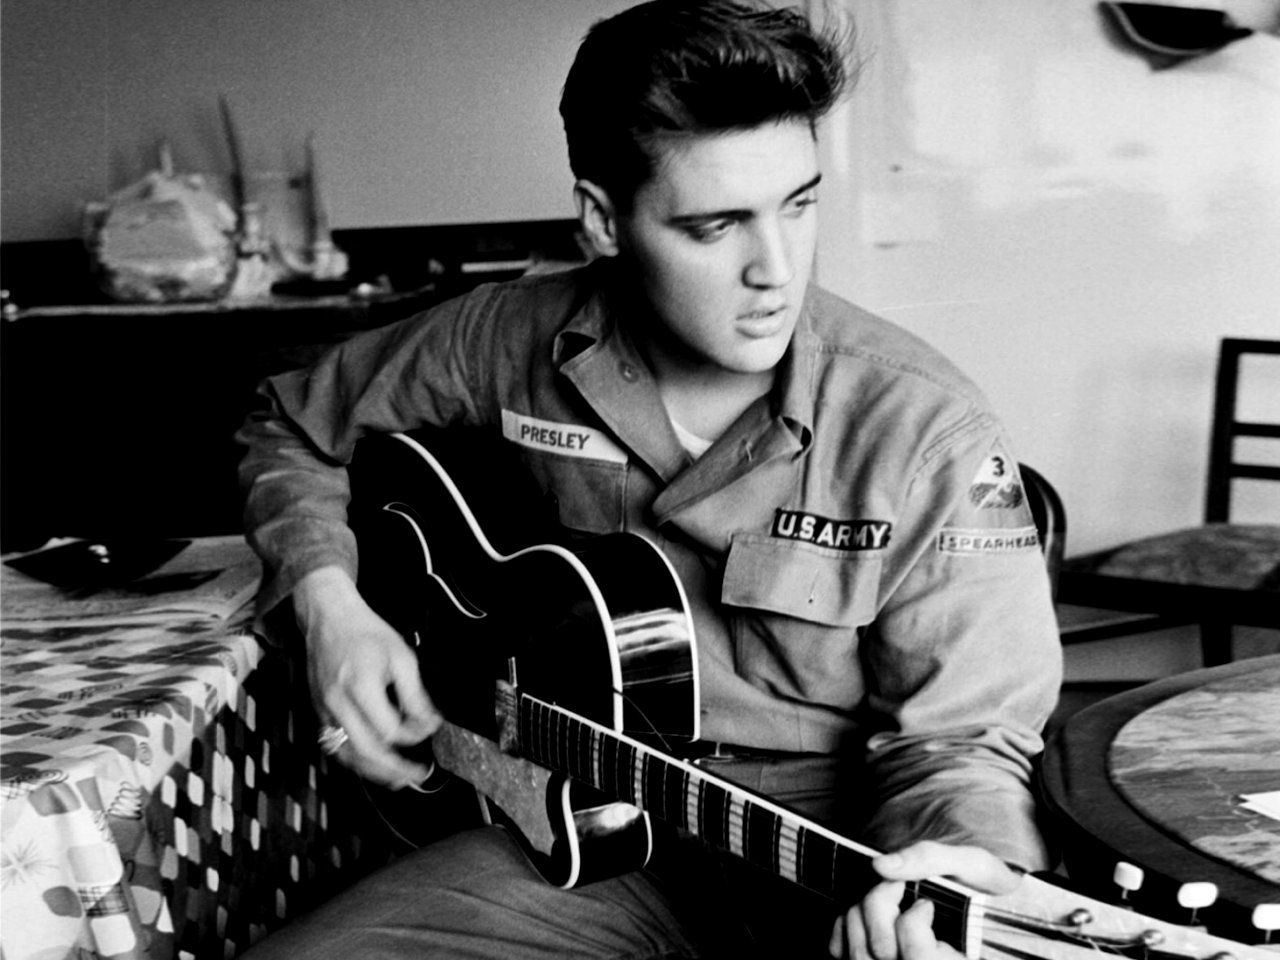 the king elvis presley